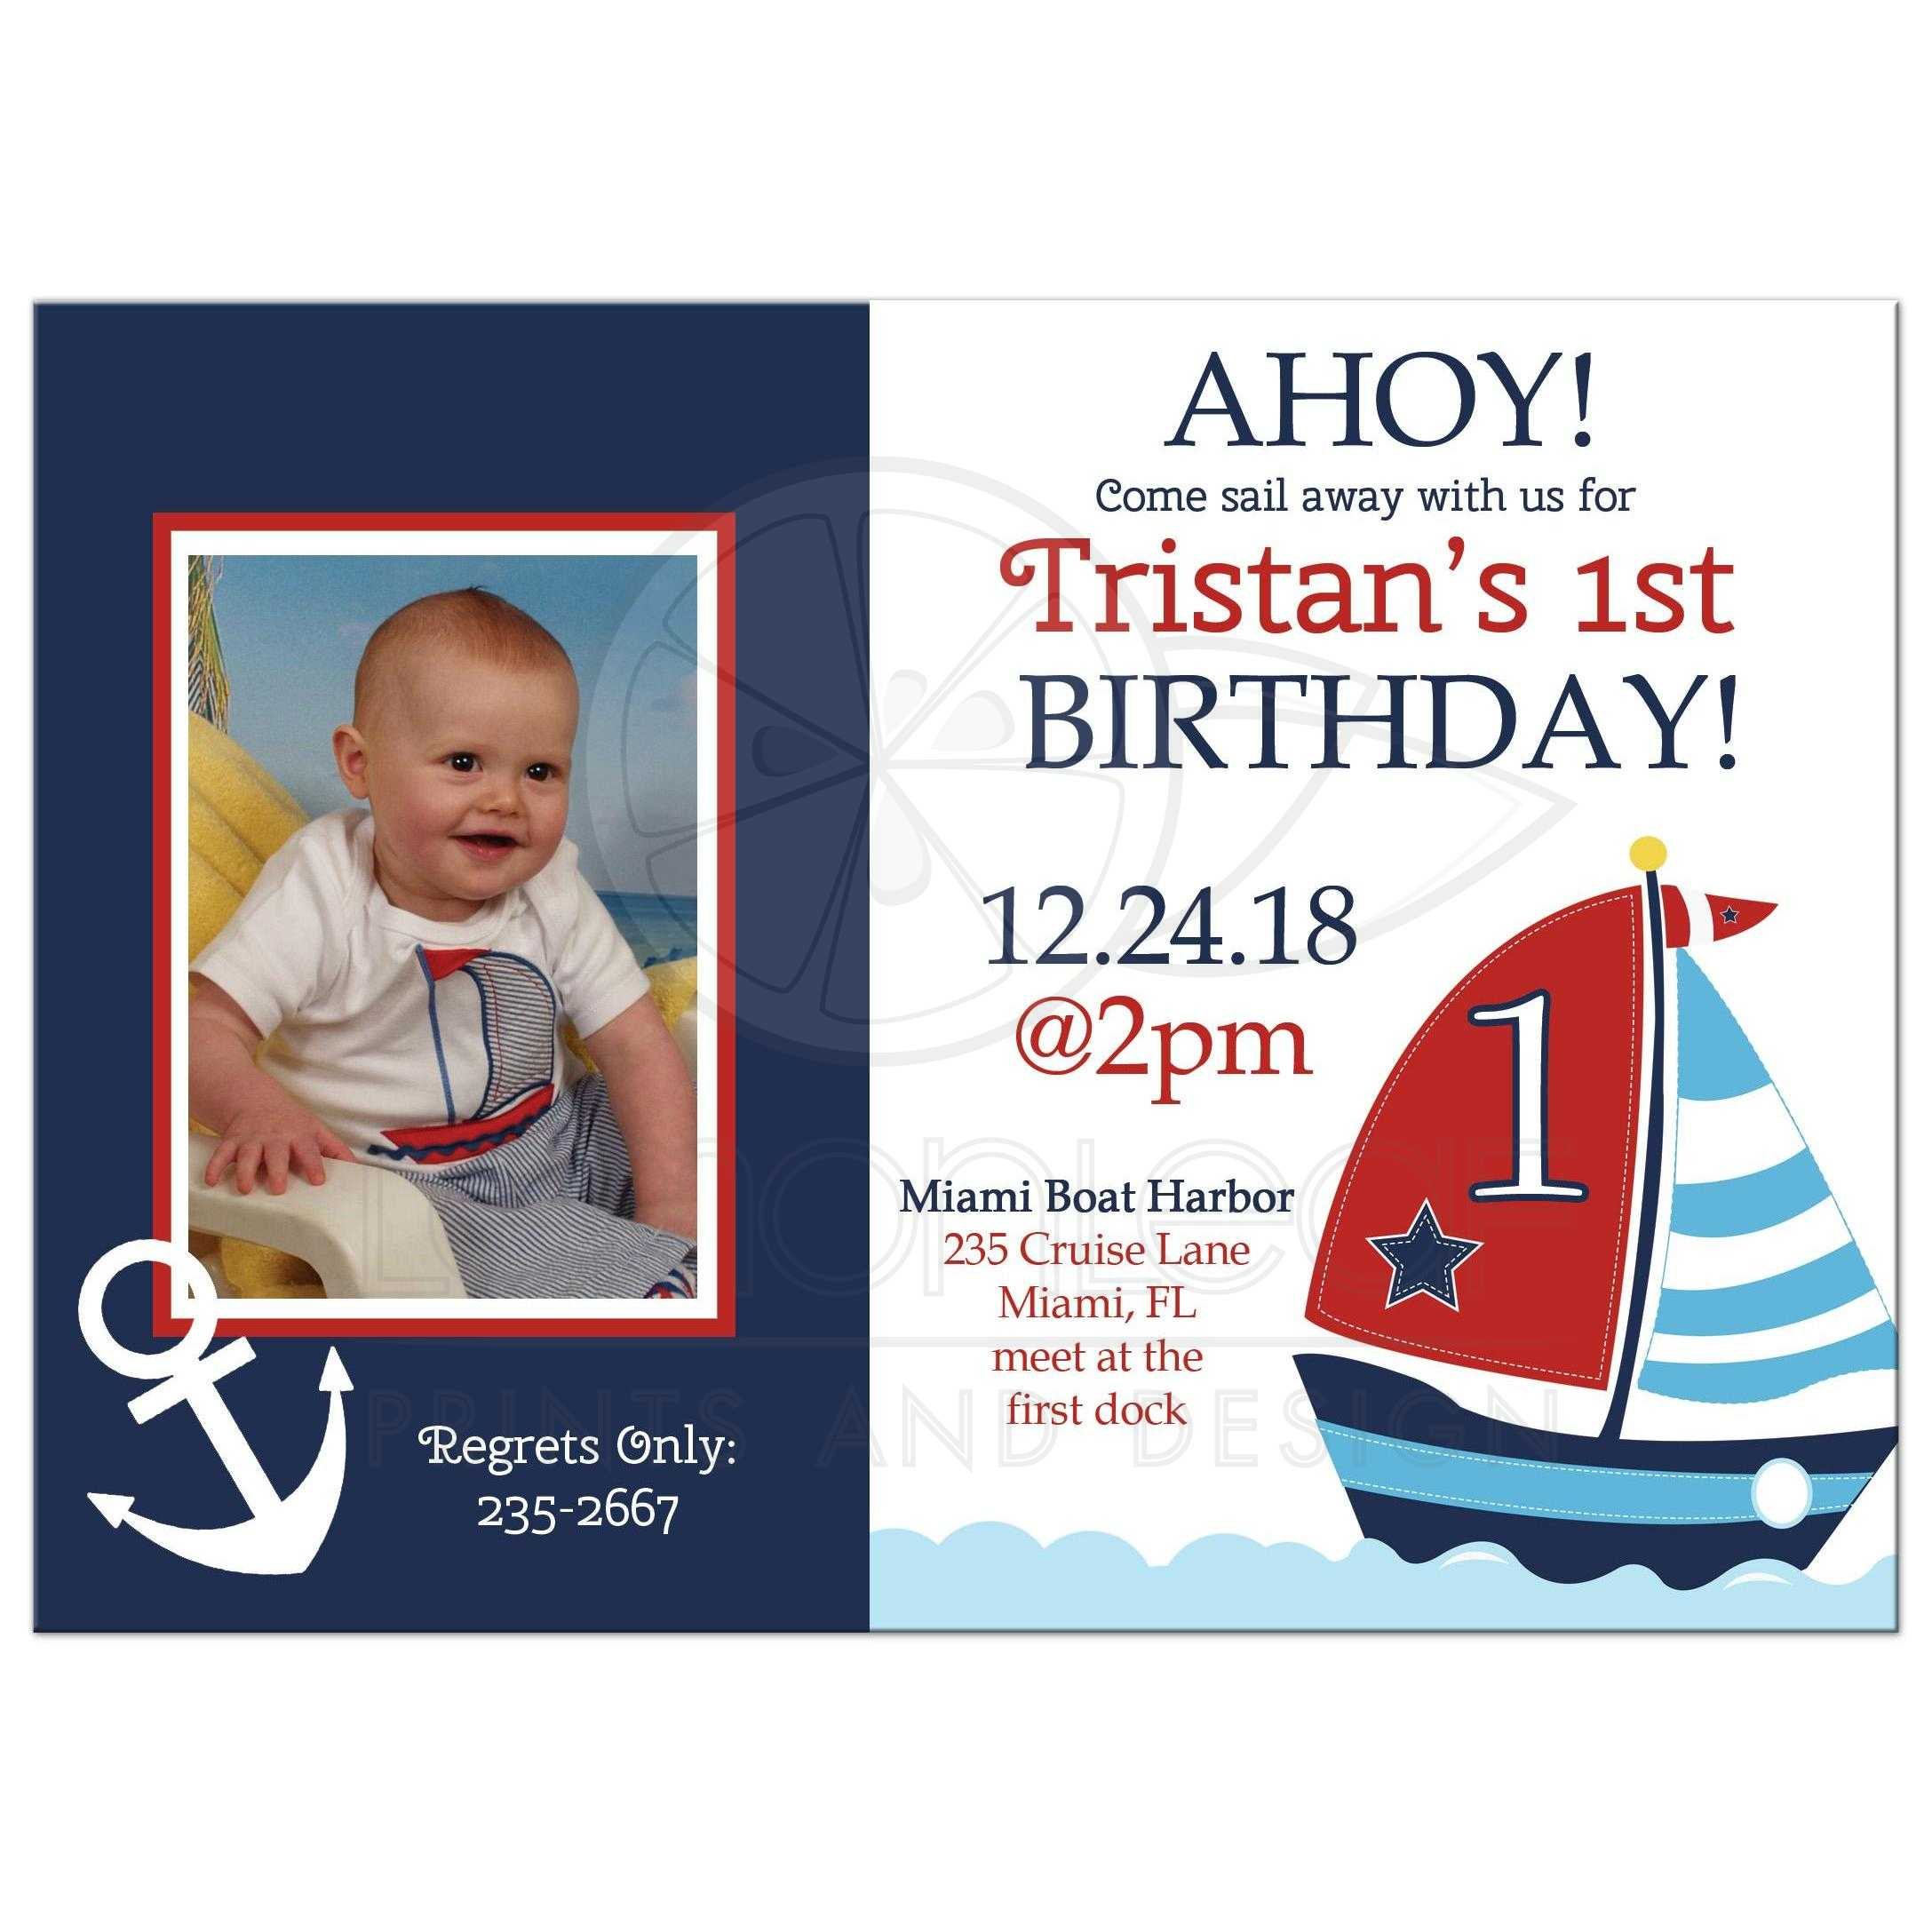 Ahoy Anchor and Sailboat Nautical Photo Birthday Invitation